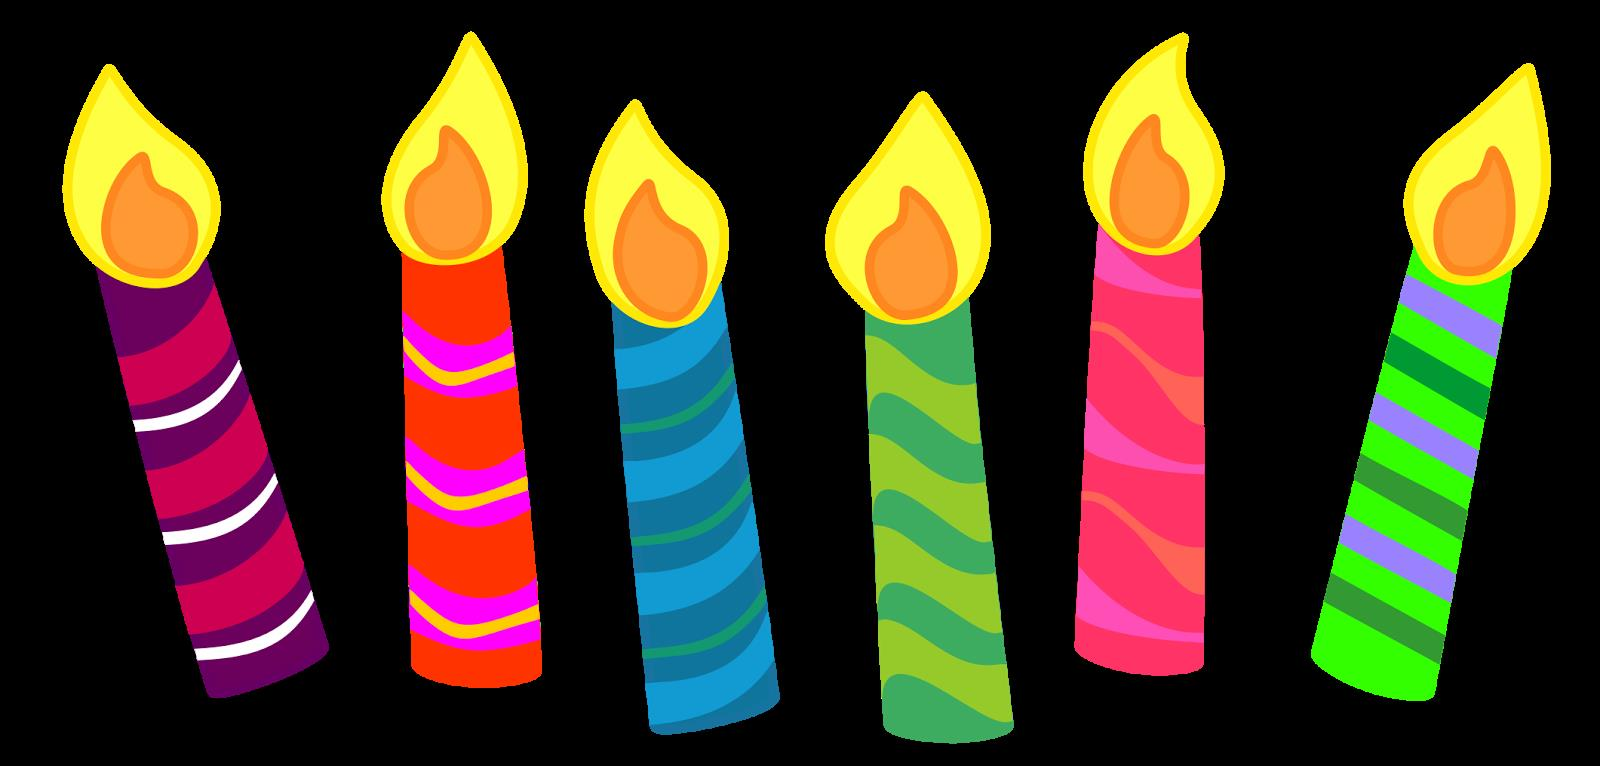 pictures of birthday candles clipart ; 488c59035c8edeed0f6fb0d1b3e08c5d